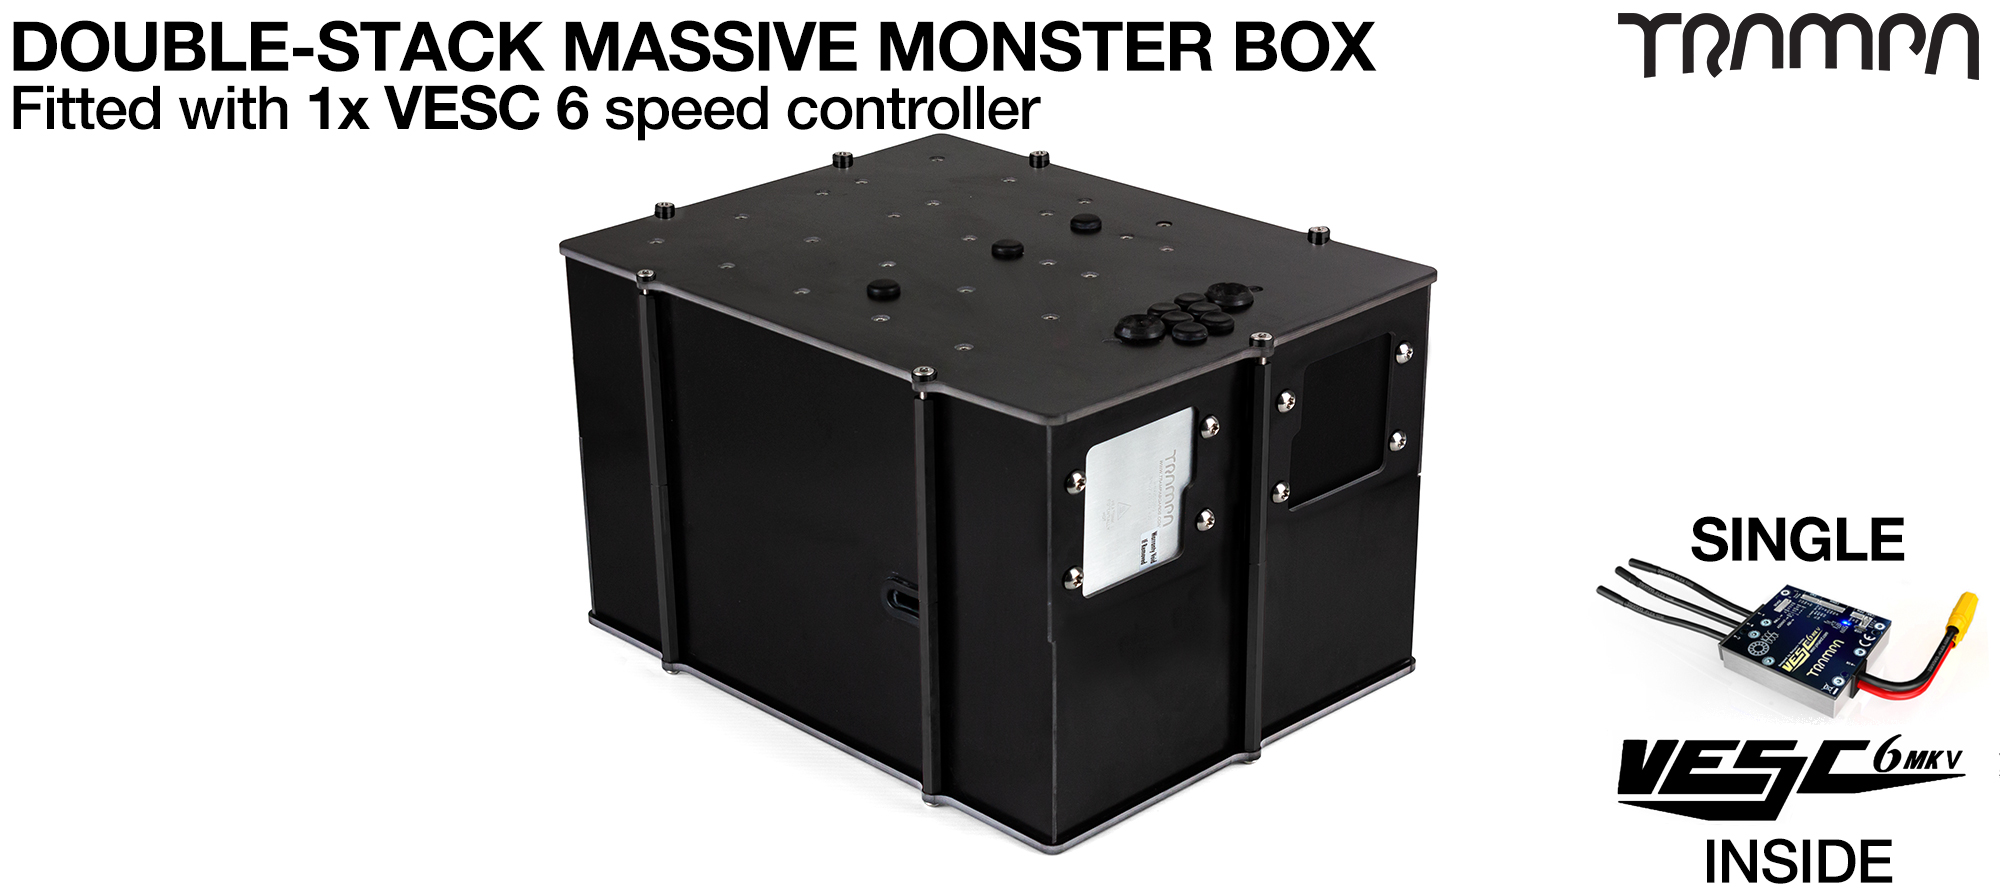 1WD DOUBLE STACK MASSIVE MONSTER Box with 1x VESC 6 & NRF Fitted